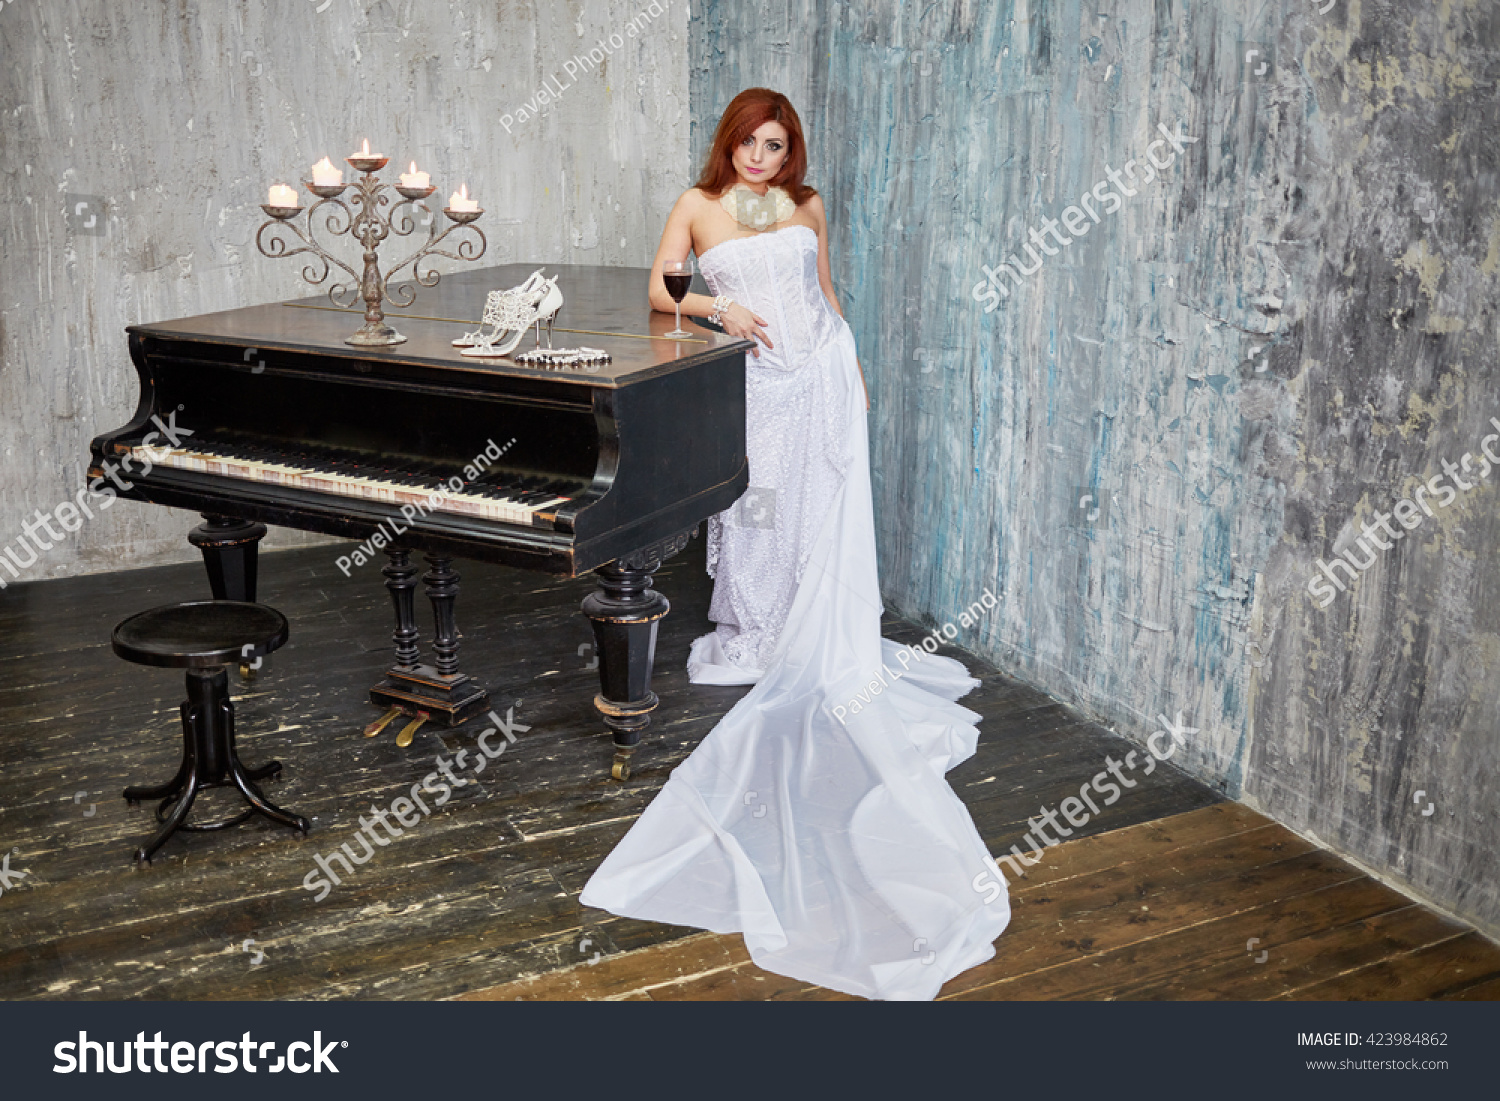 Redhaired Woman White Dress Stands Leaning Stock Photo (Royalty Free ...